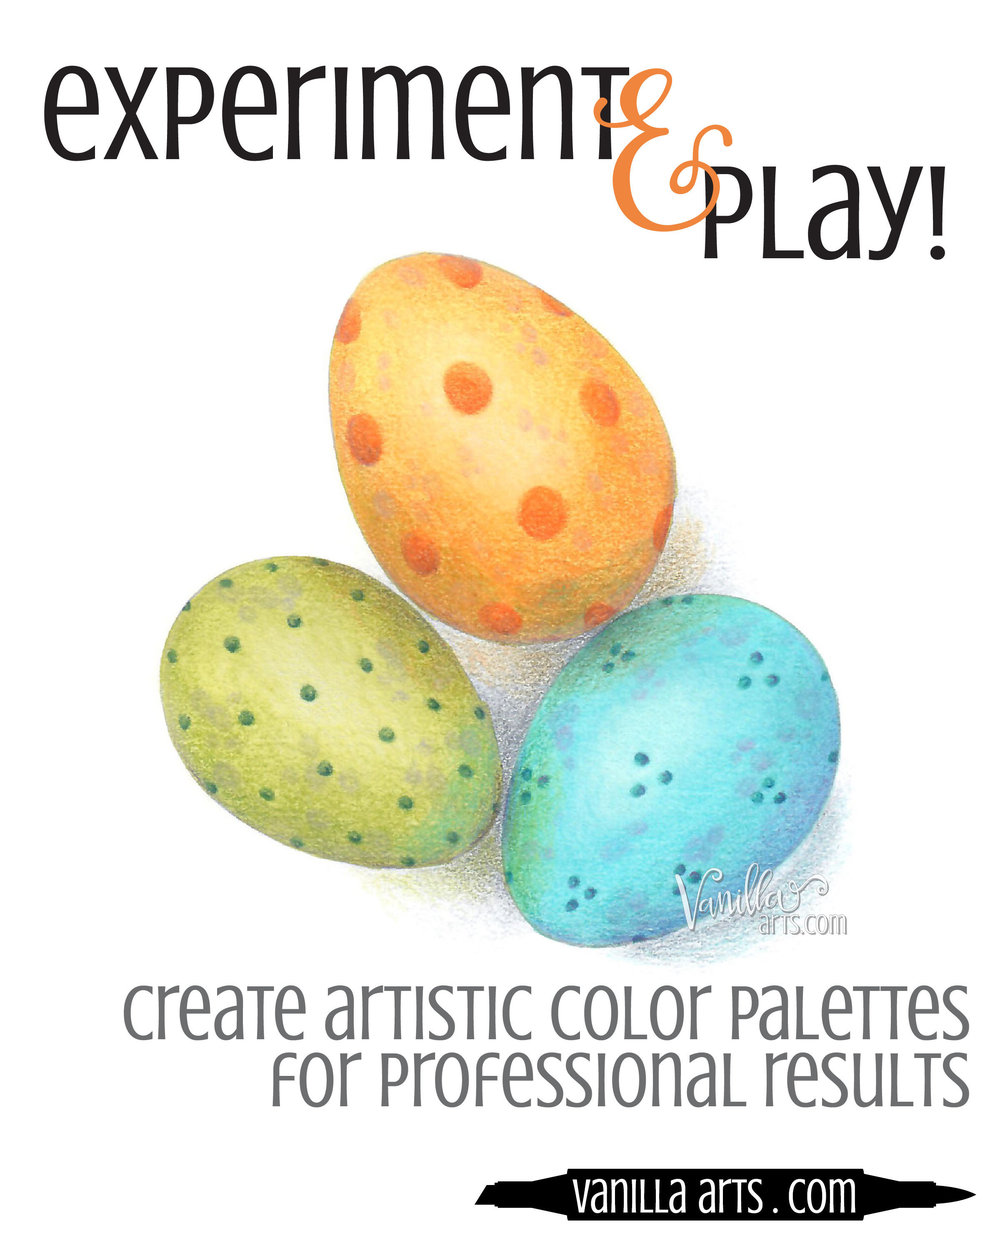 Learn to create artistic color palettes for sophisticated and professional looking coloring projects. Improve the look of your Copic, colored pencil, or watercolor projects. | VanillaArts.com